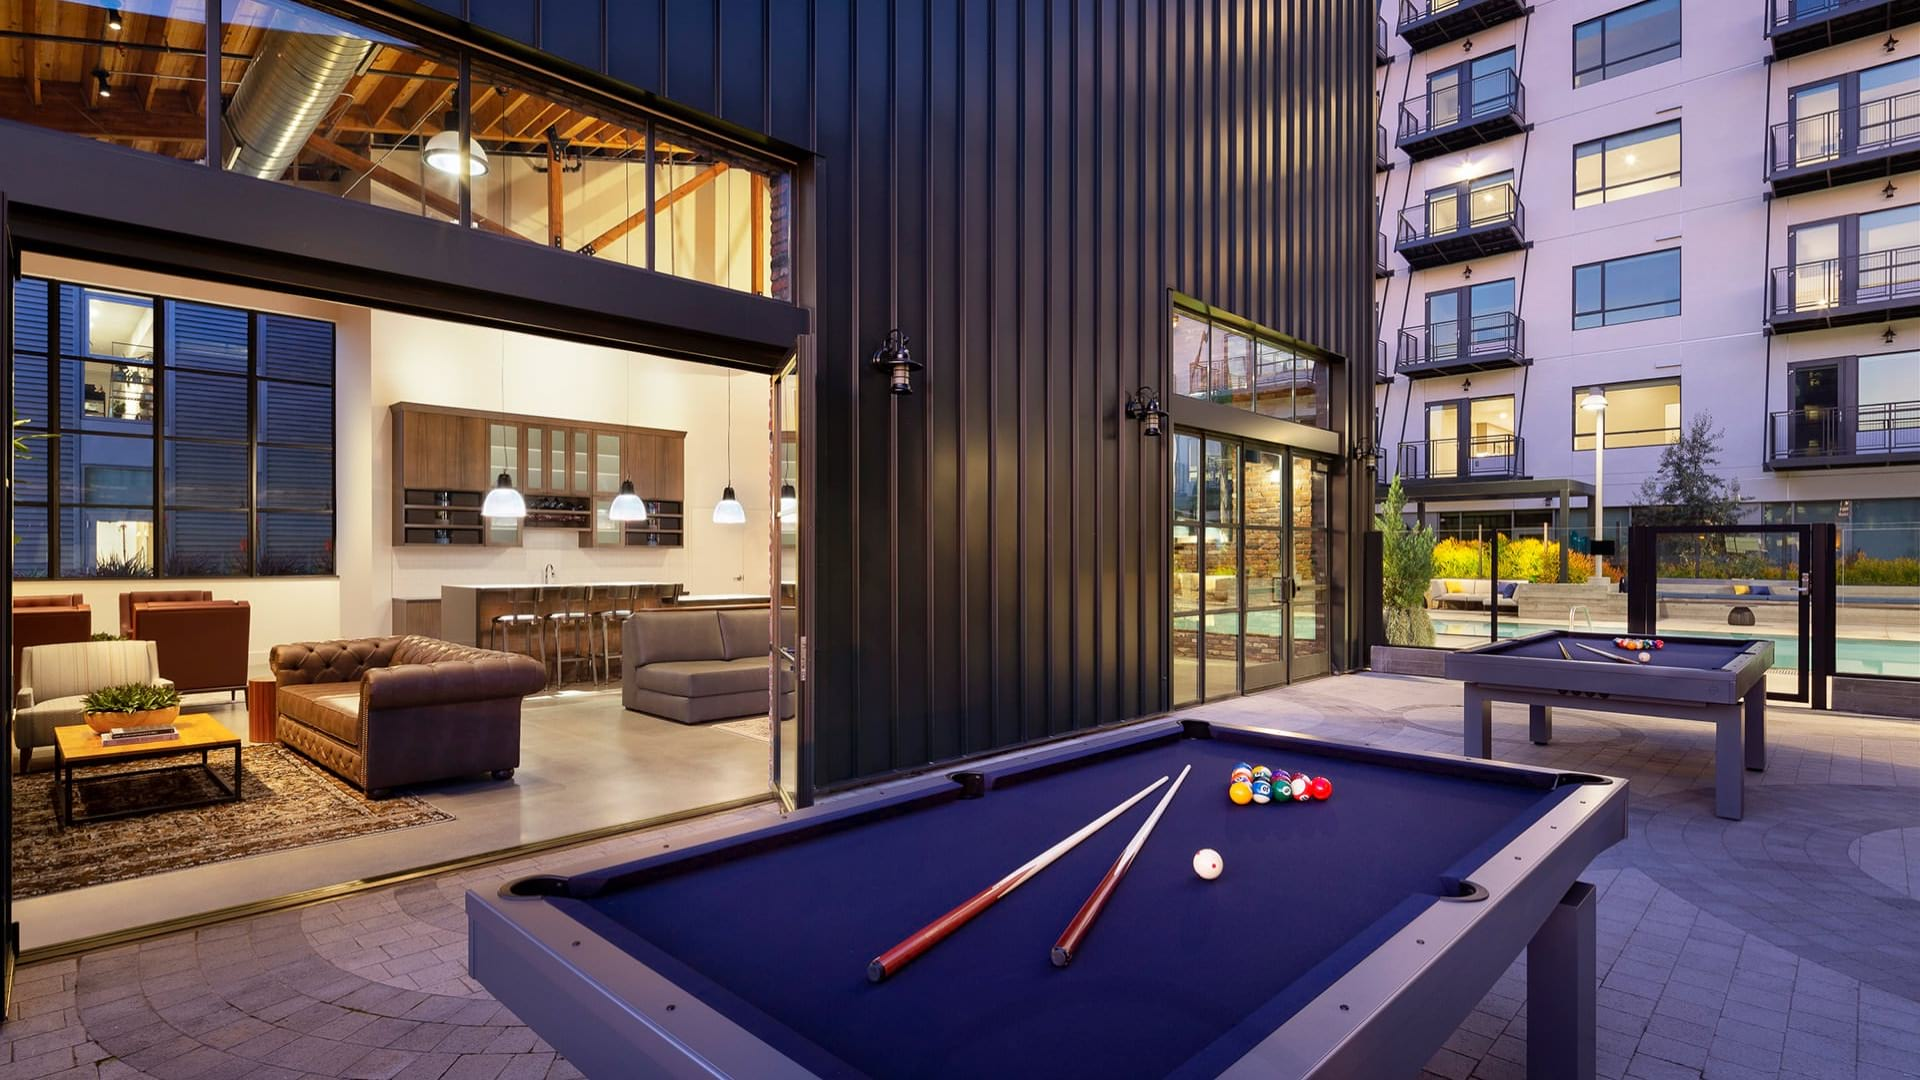 billiard tables on outdoor patio outside of clubroom